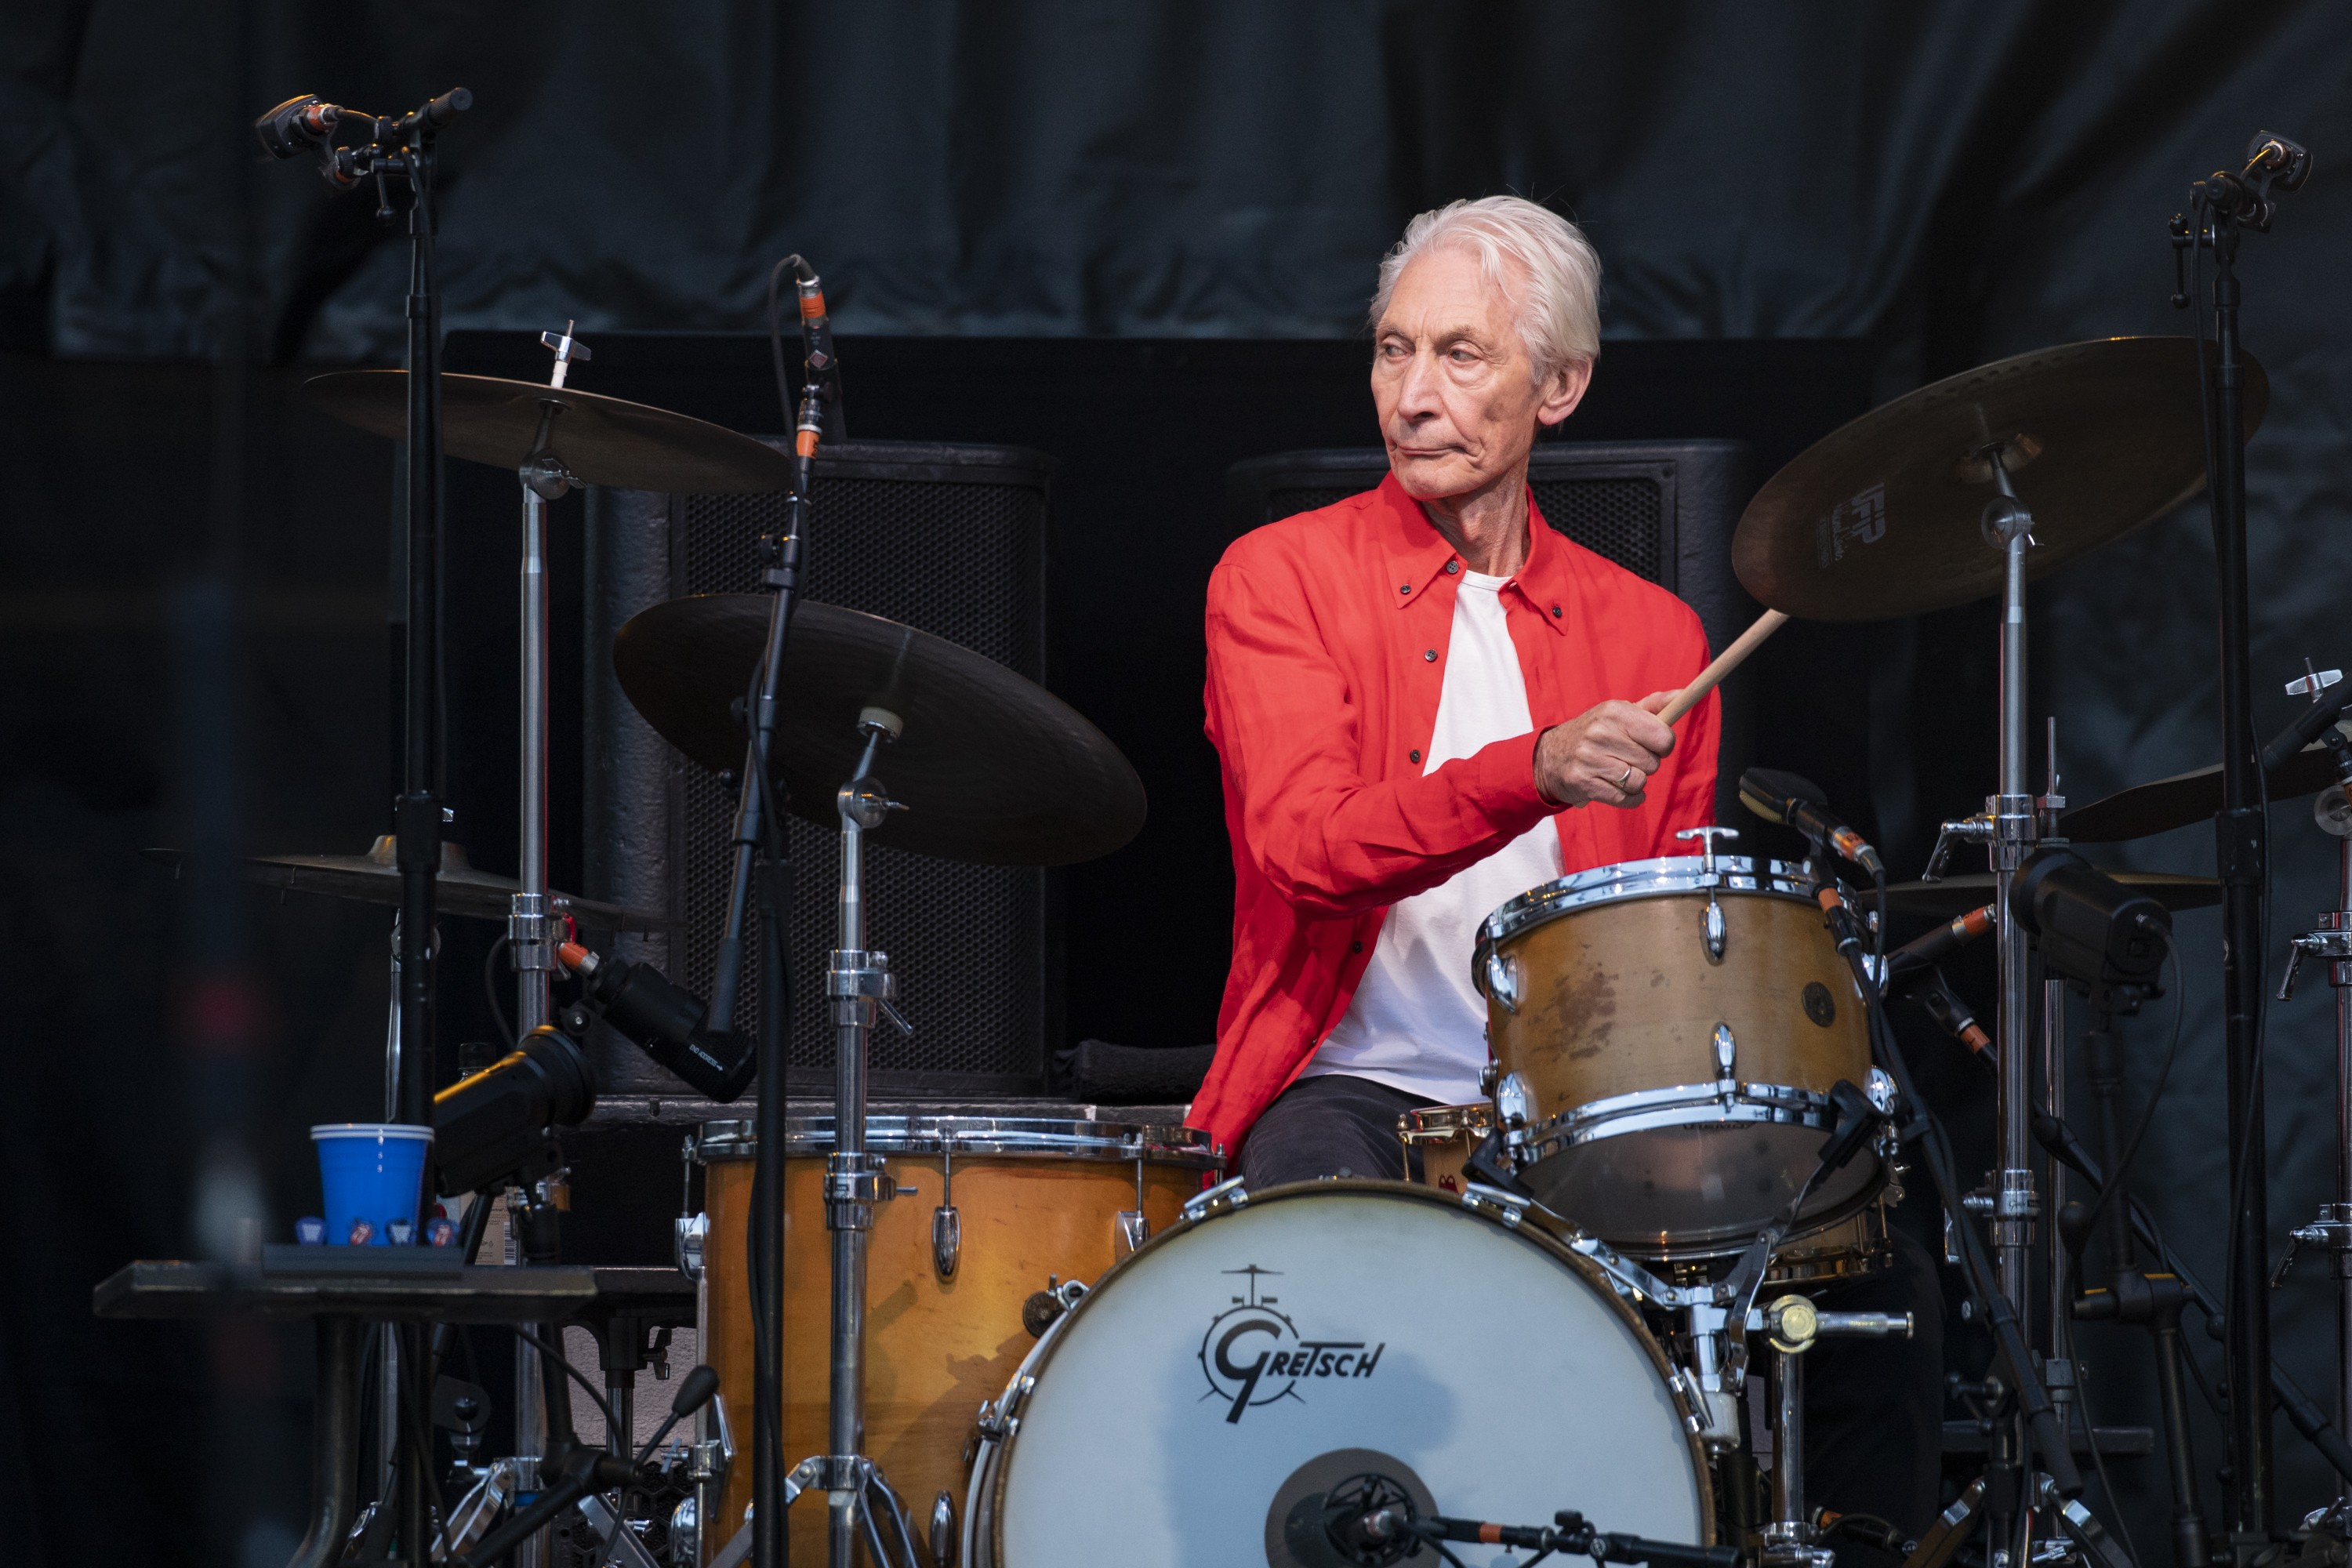 MANCHESTER, ENGLAND - JUNE 05: Charlie Watts of The Rolling Stones performs live on stage at Old Trafford on June 5, 2018 in Manchester, England. (Photo by Andrew Benge/Redferns) (Foto: Redferns)